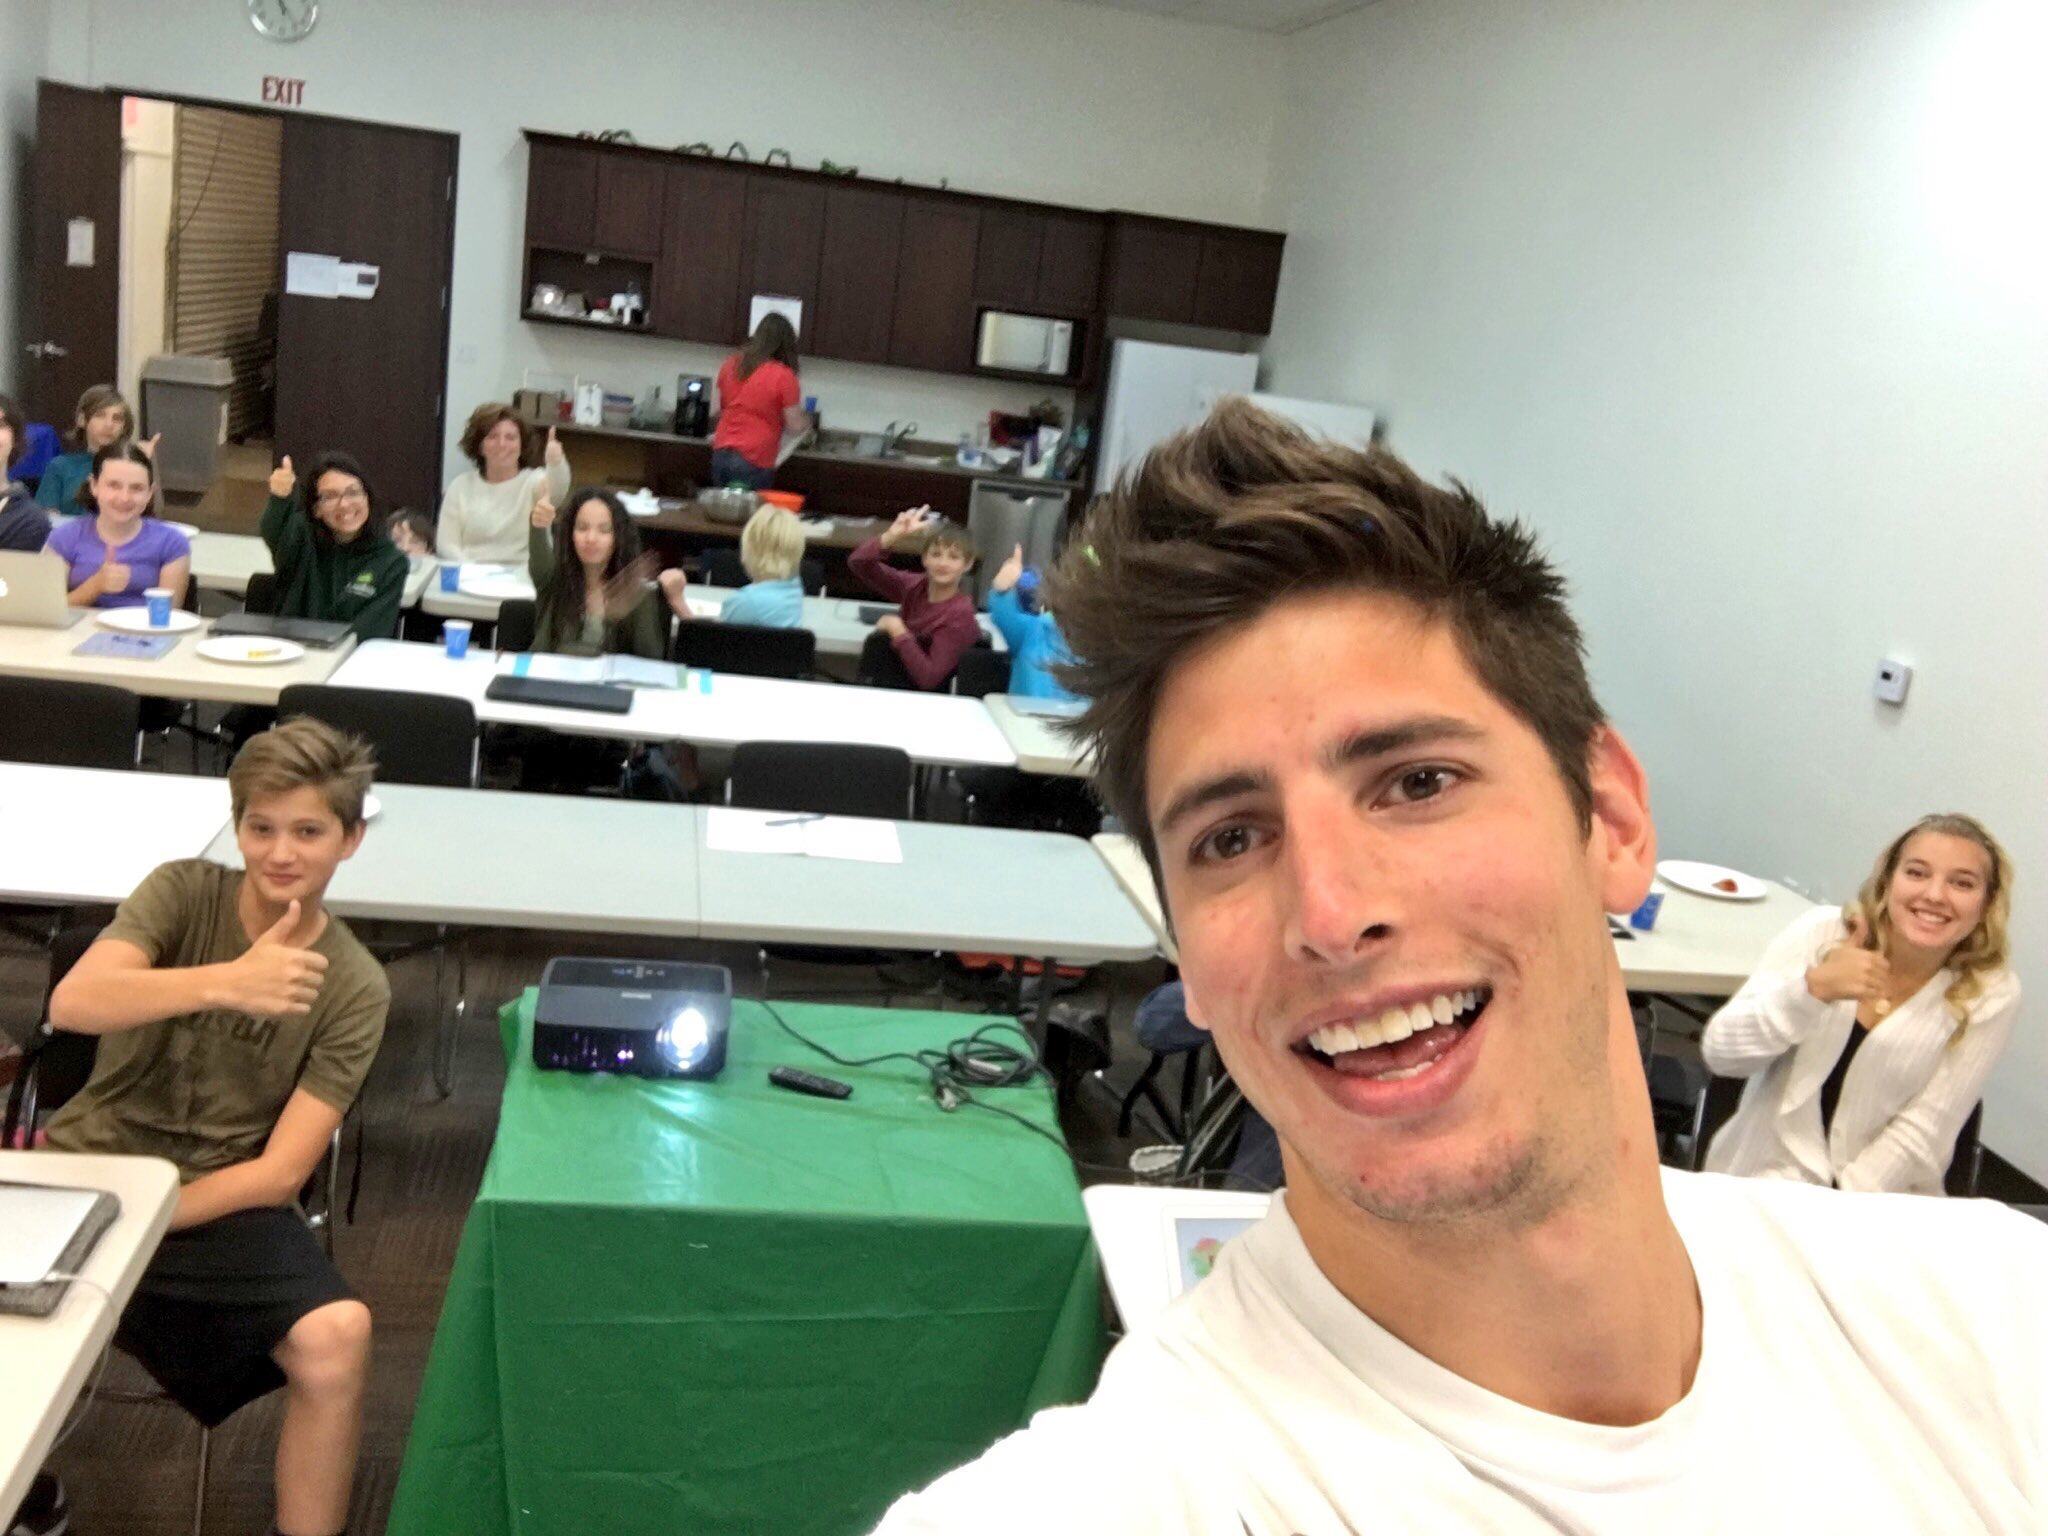 Had to snag a selfie with the kids before my intro presentation.